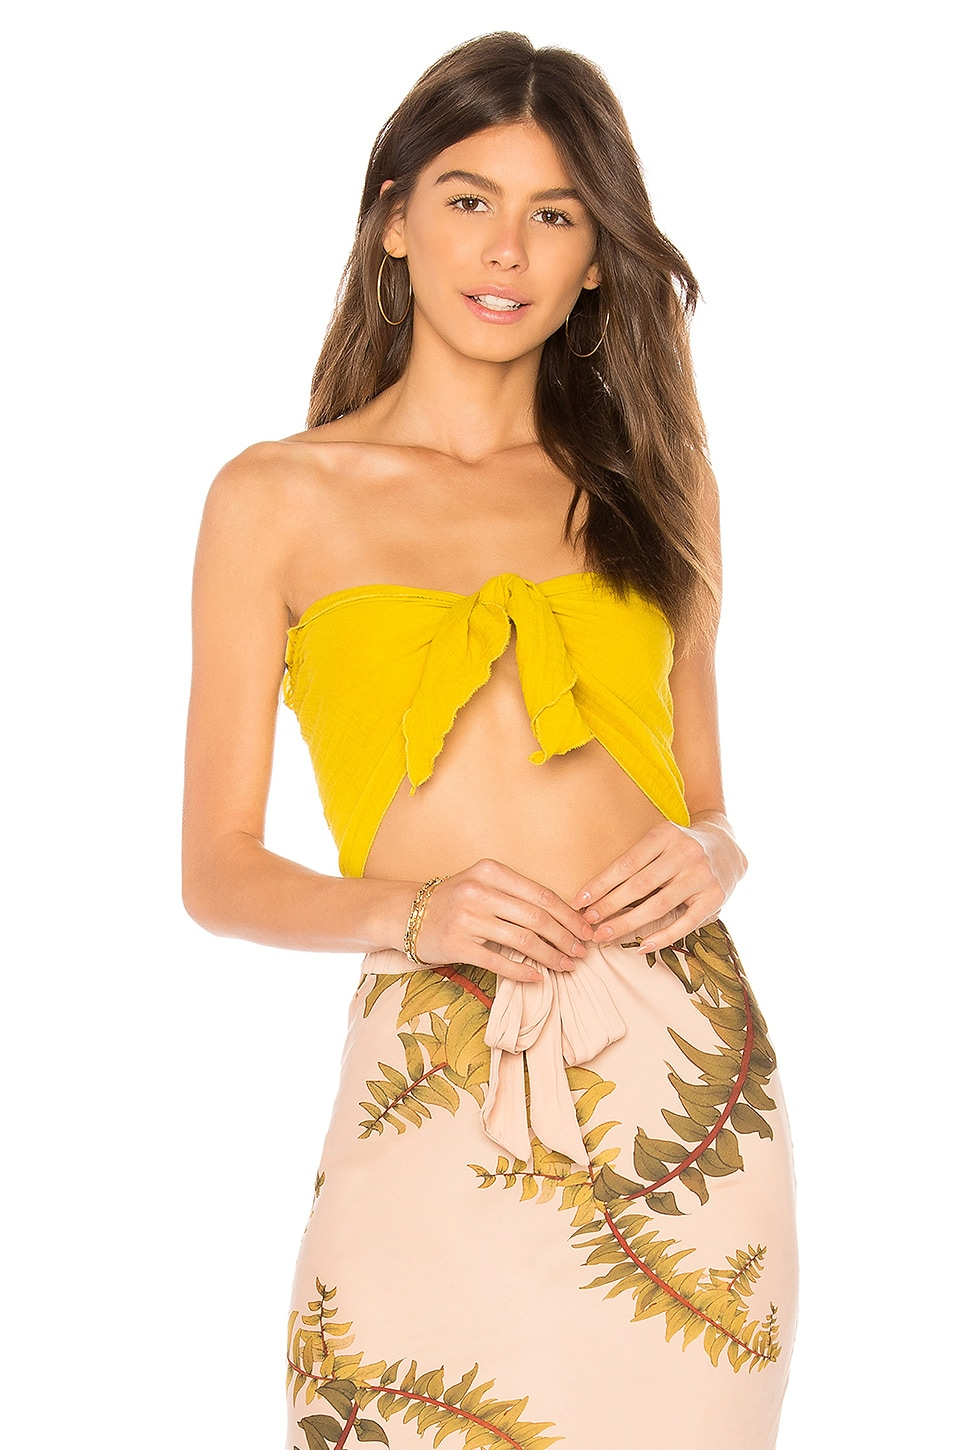 CALI DREAMING BOW TIE TOP